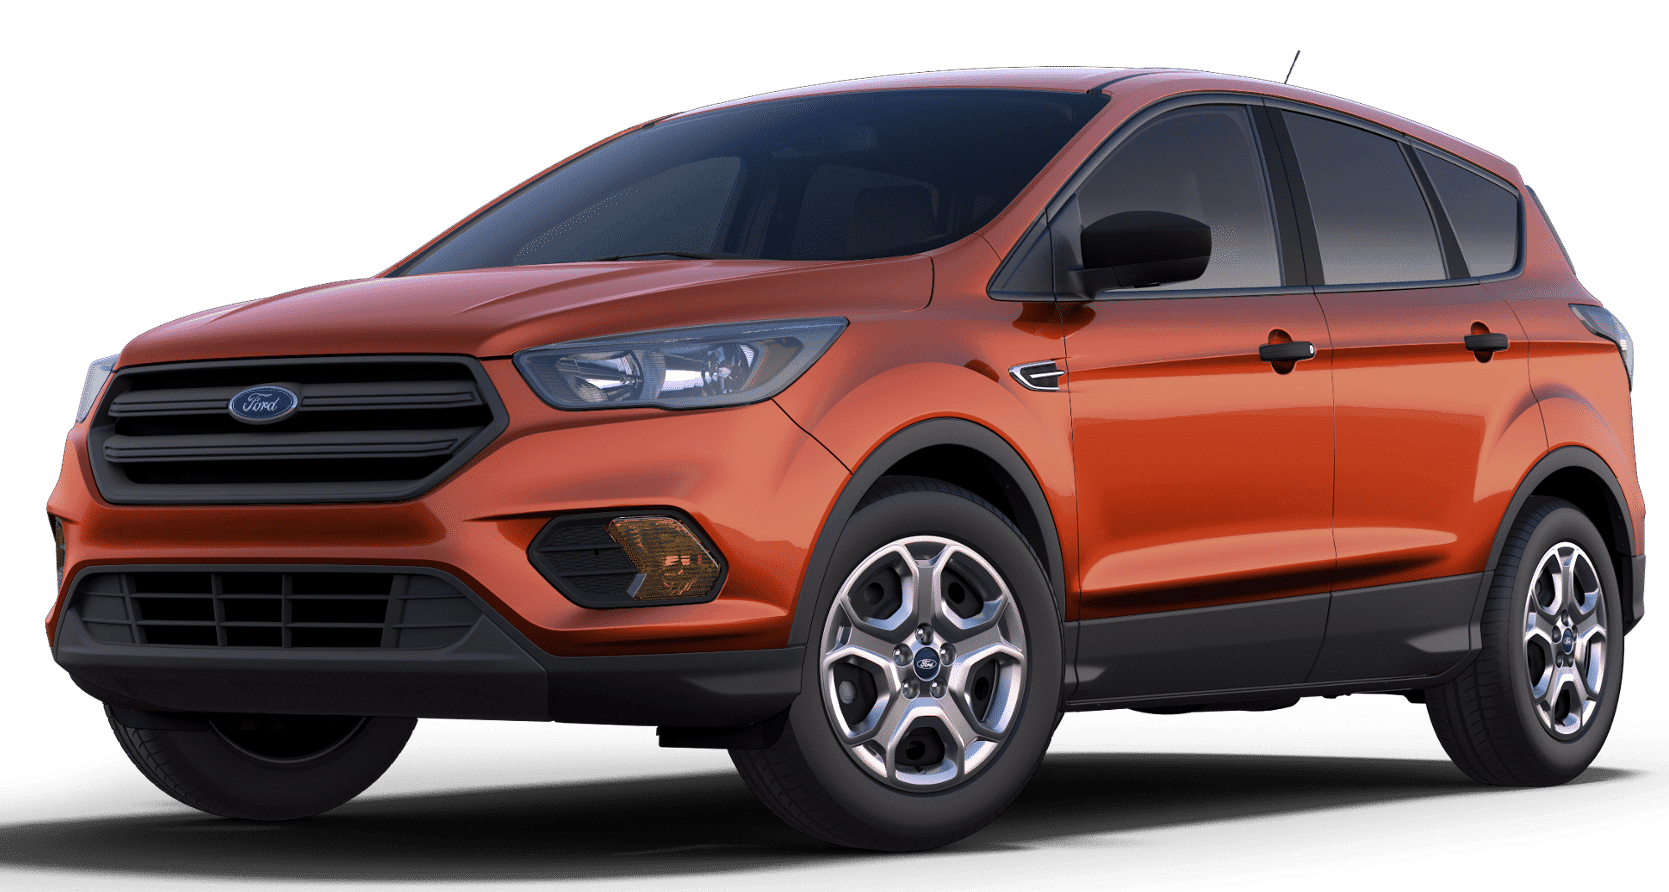 2019 Ford Escape 1.5L SEL Price in UAE, Specs & Review in ...